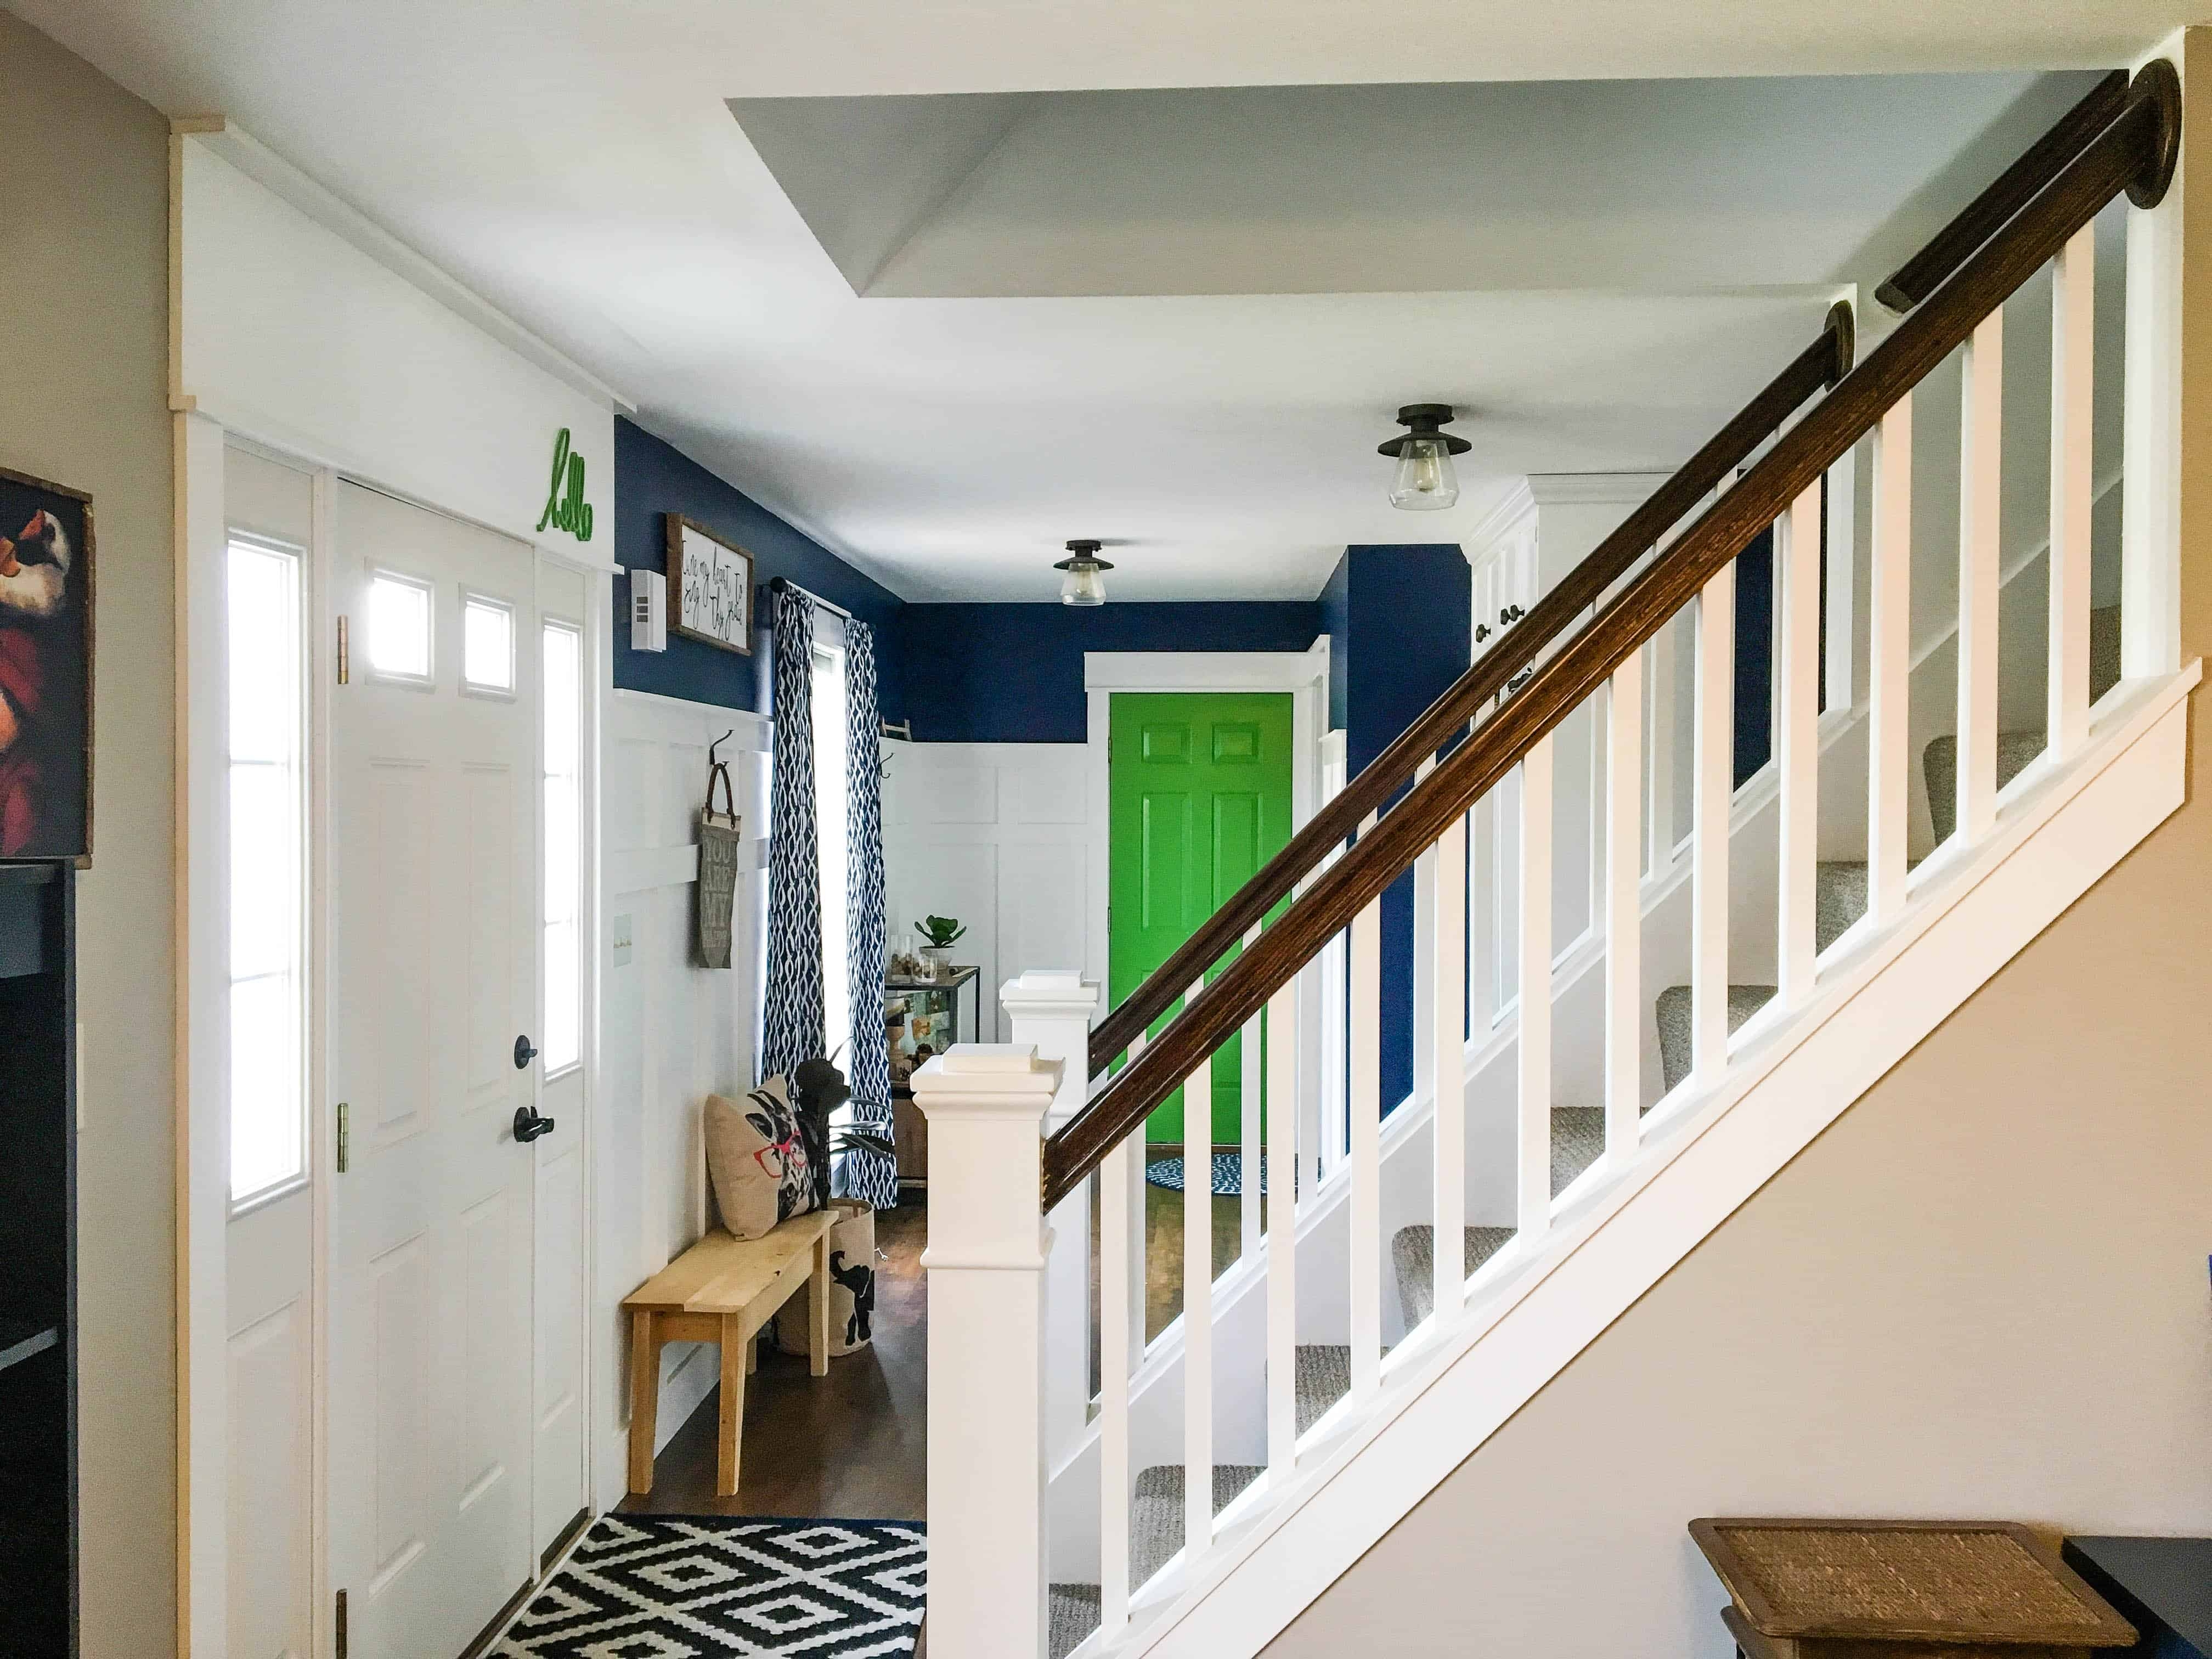 How To Open Up An Interior Staircase A Turtle S Life For Me   Designs For Staircase Wall   Partition   Classy   Attractive   Luxury   Transitional